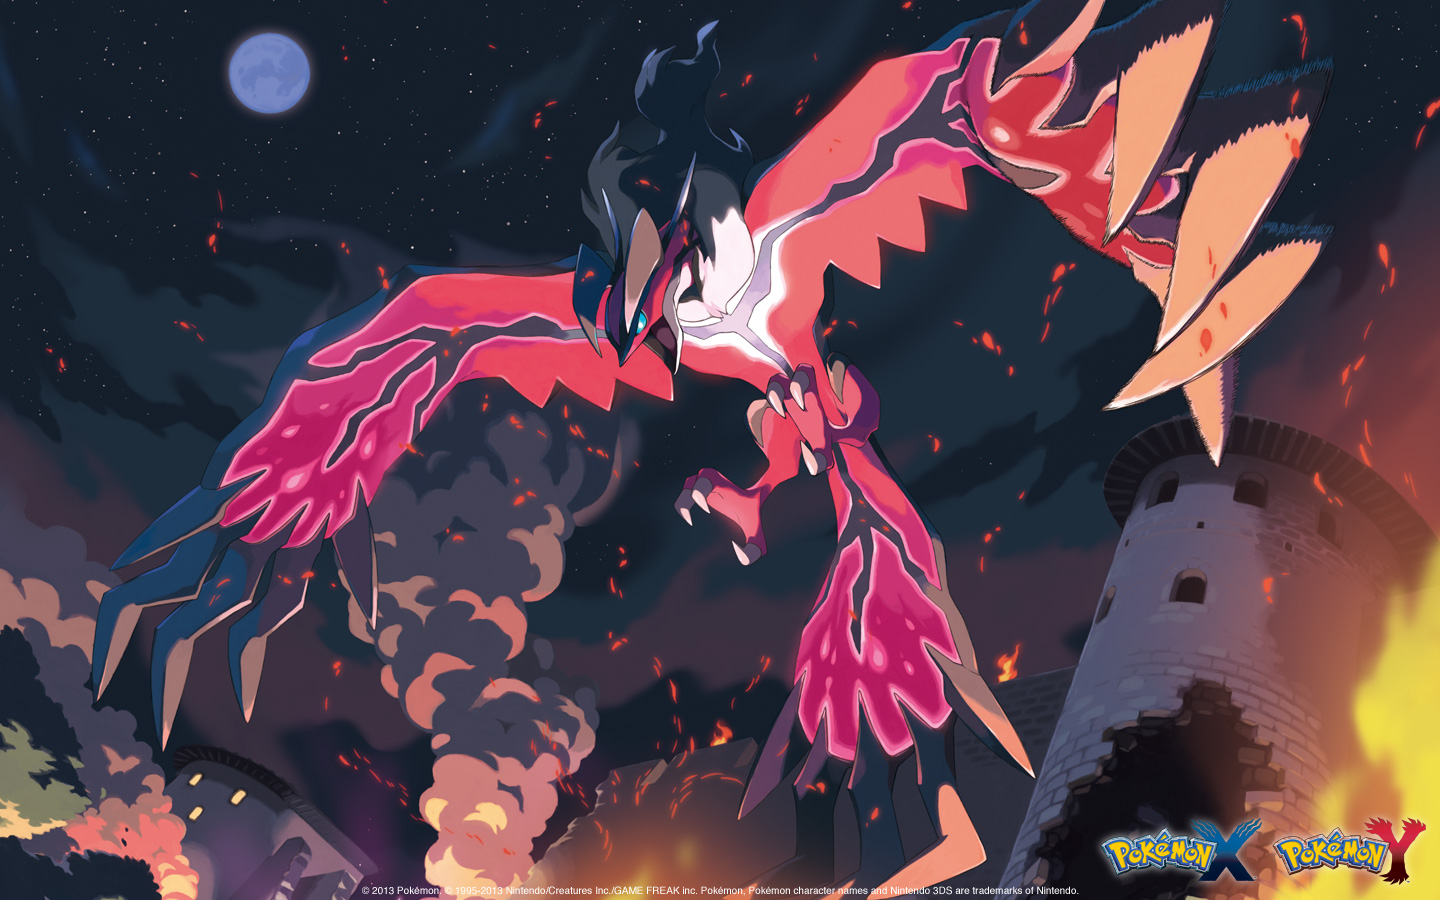 Boss this geek squadron images pokemon x hd wallpaper and boss this geek squadron images pokemon x hd wallpaper and background photos voltagebd Gallery